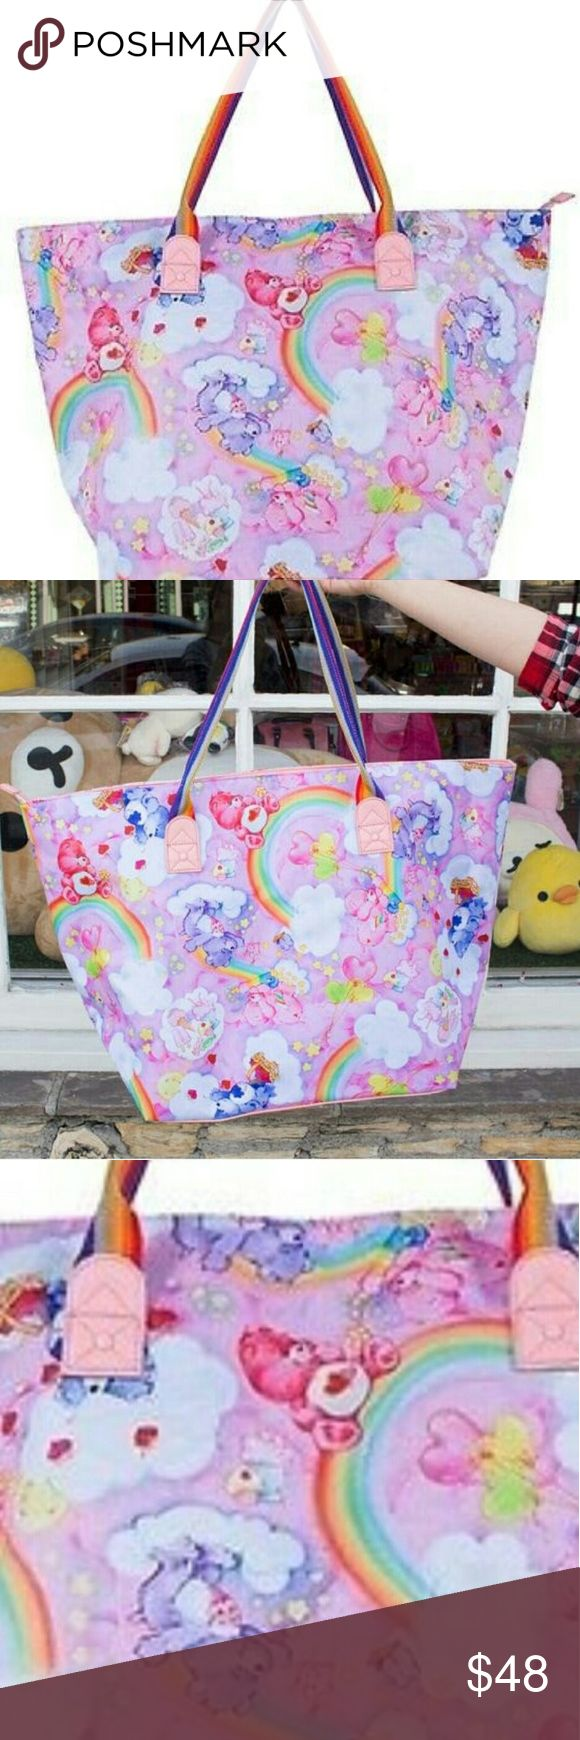 IRON FIST  Care Bears Tote Bag   Extra large Care Bears Tote Bag IRON FIST   Care Bears Tote Bag   Extra large tote bag with Care Bears print  Featuring a zipped closure and rainbow straps Iron Fist Bags